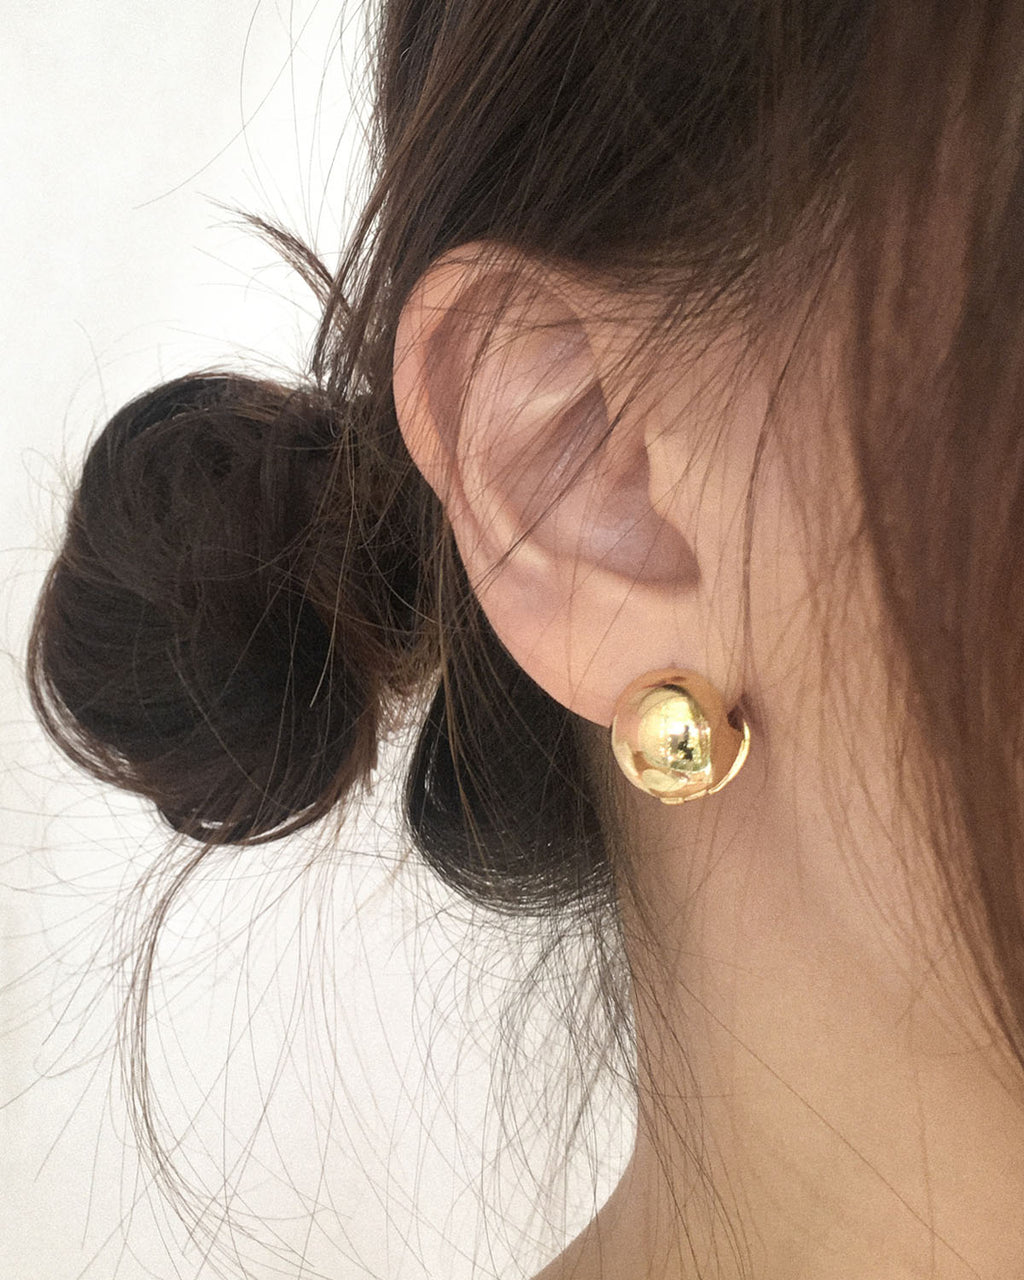 Spherical shaped earrings that hugs around your ear lobes - the CORA ball earrings | The Hexad Jewelry